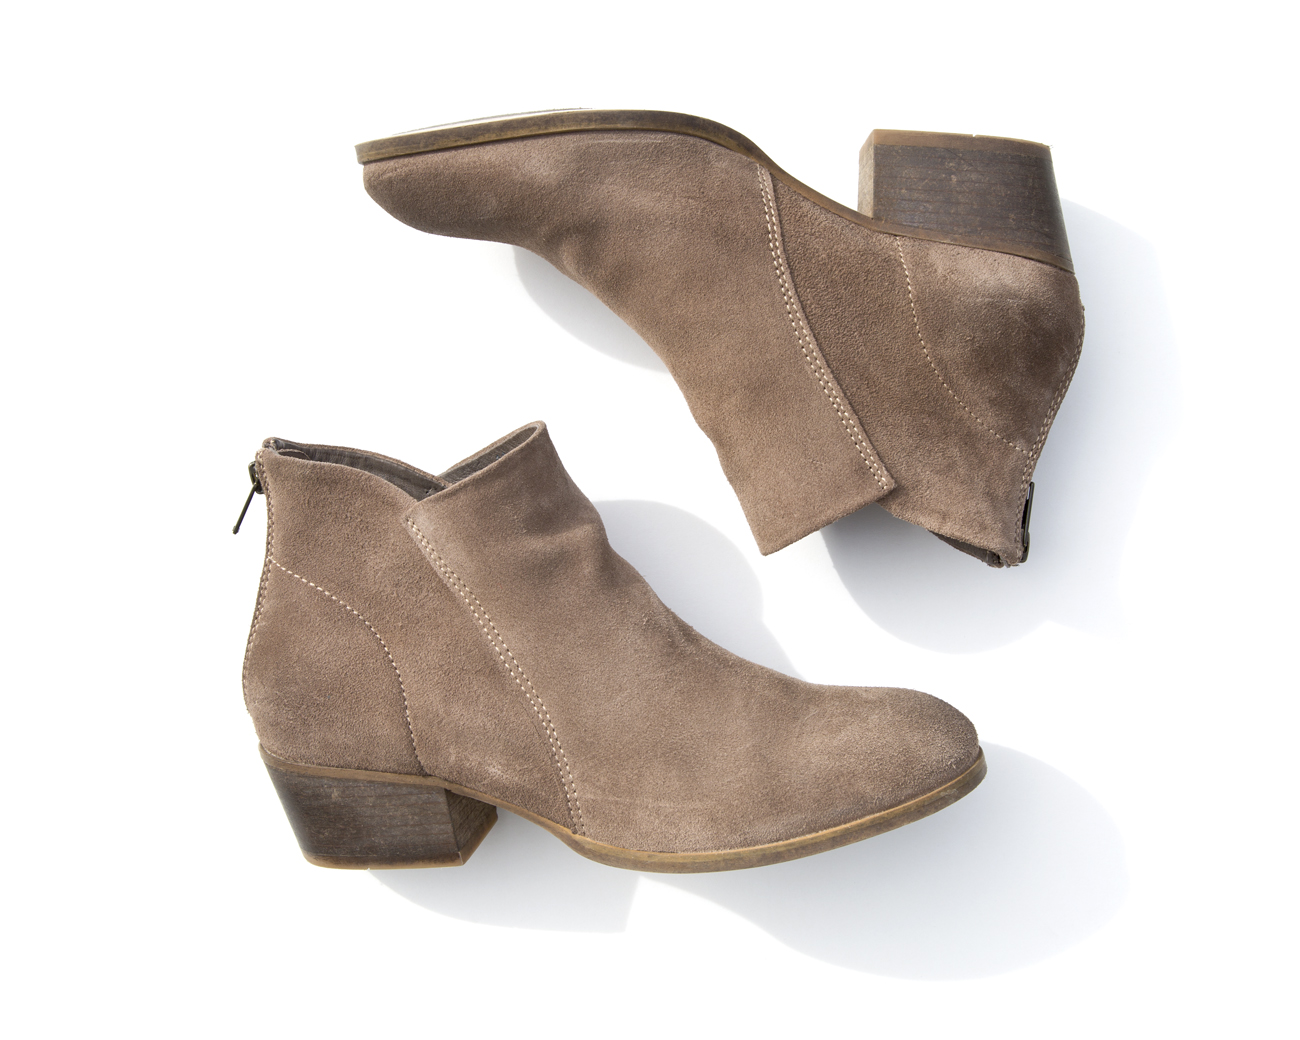 Ankle Boot Collection — Heather A. Turner